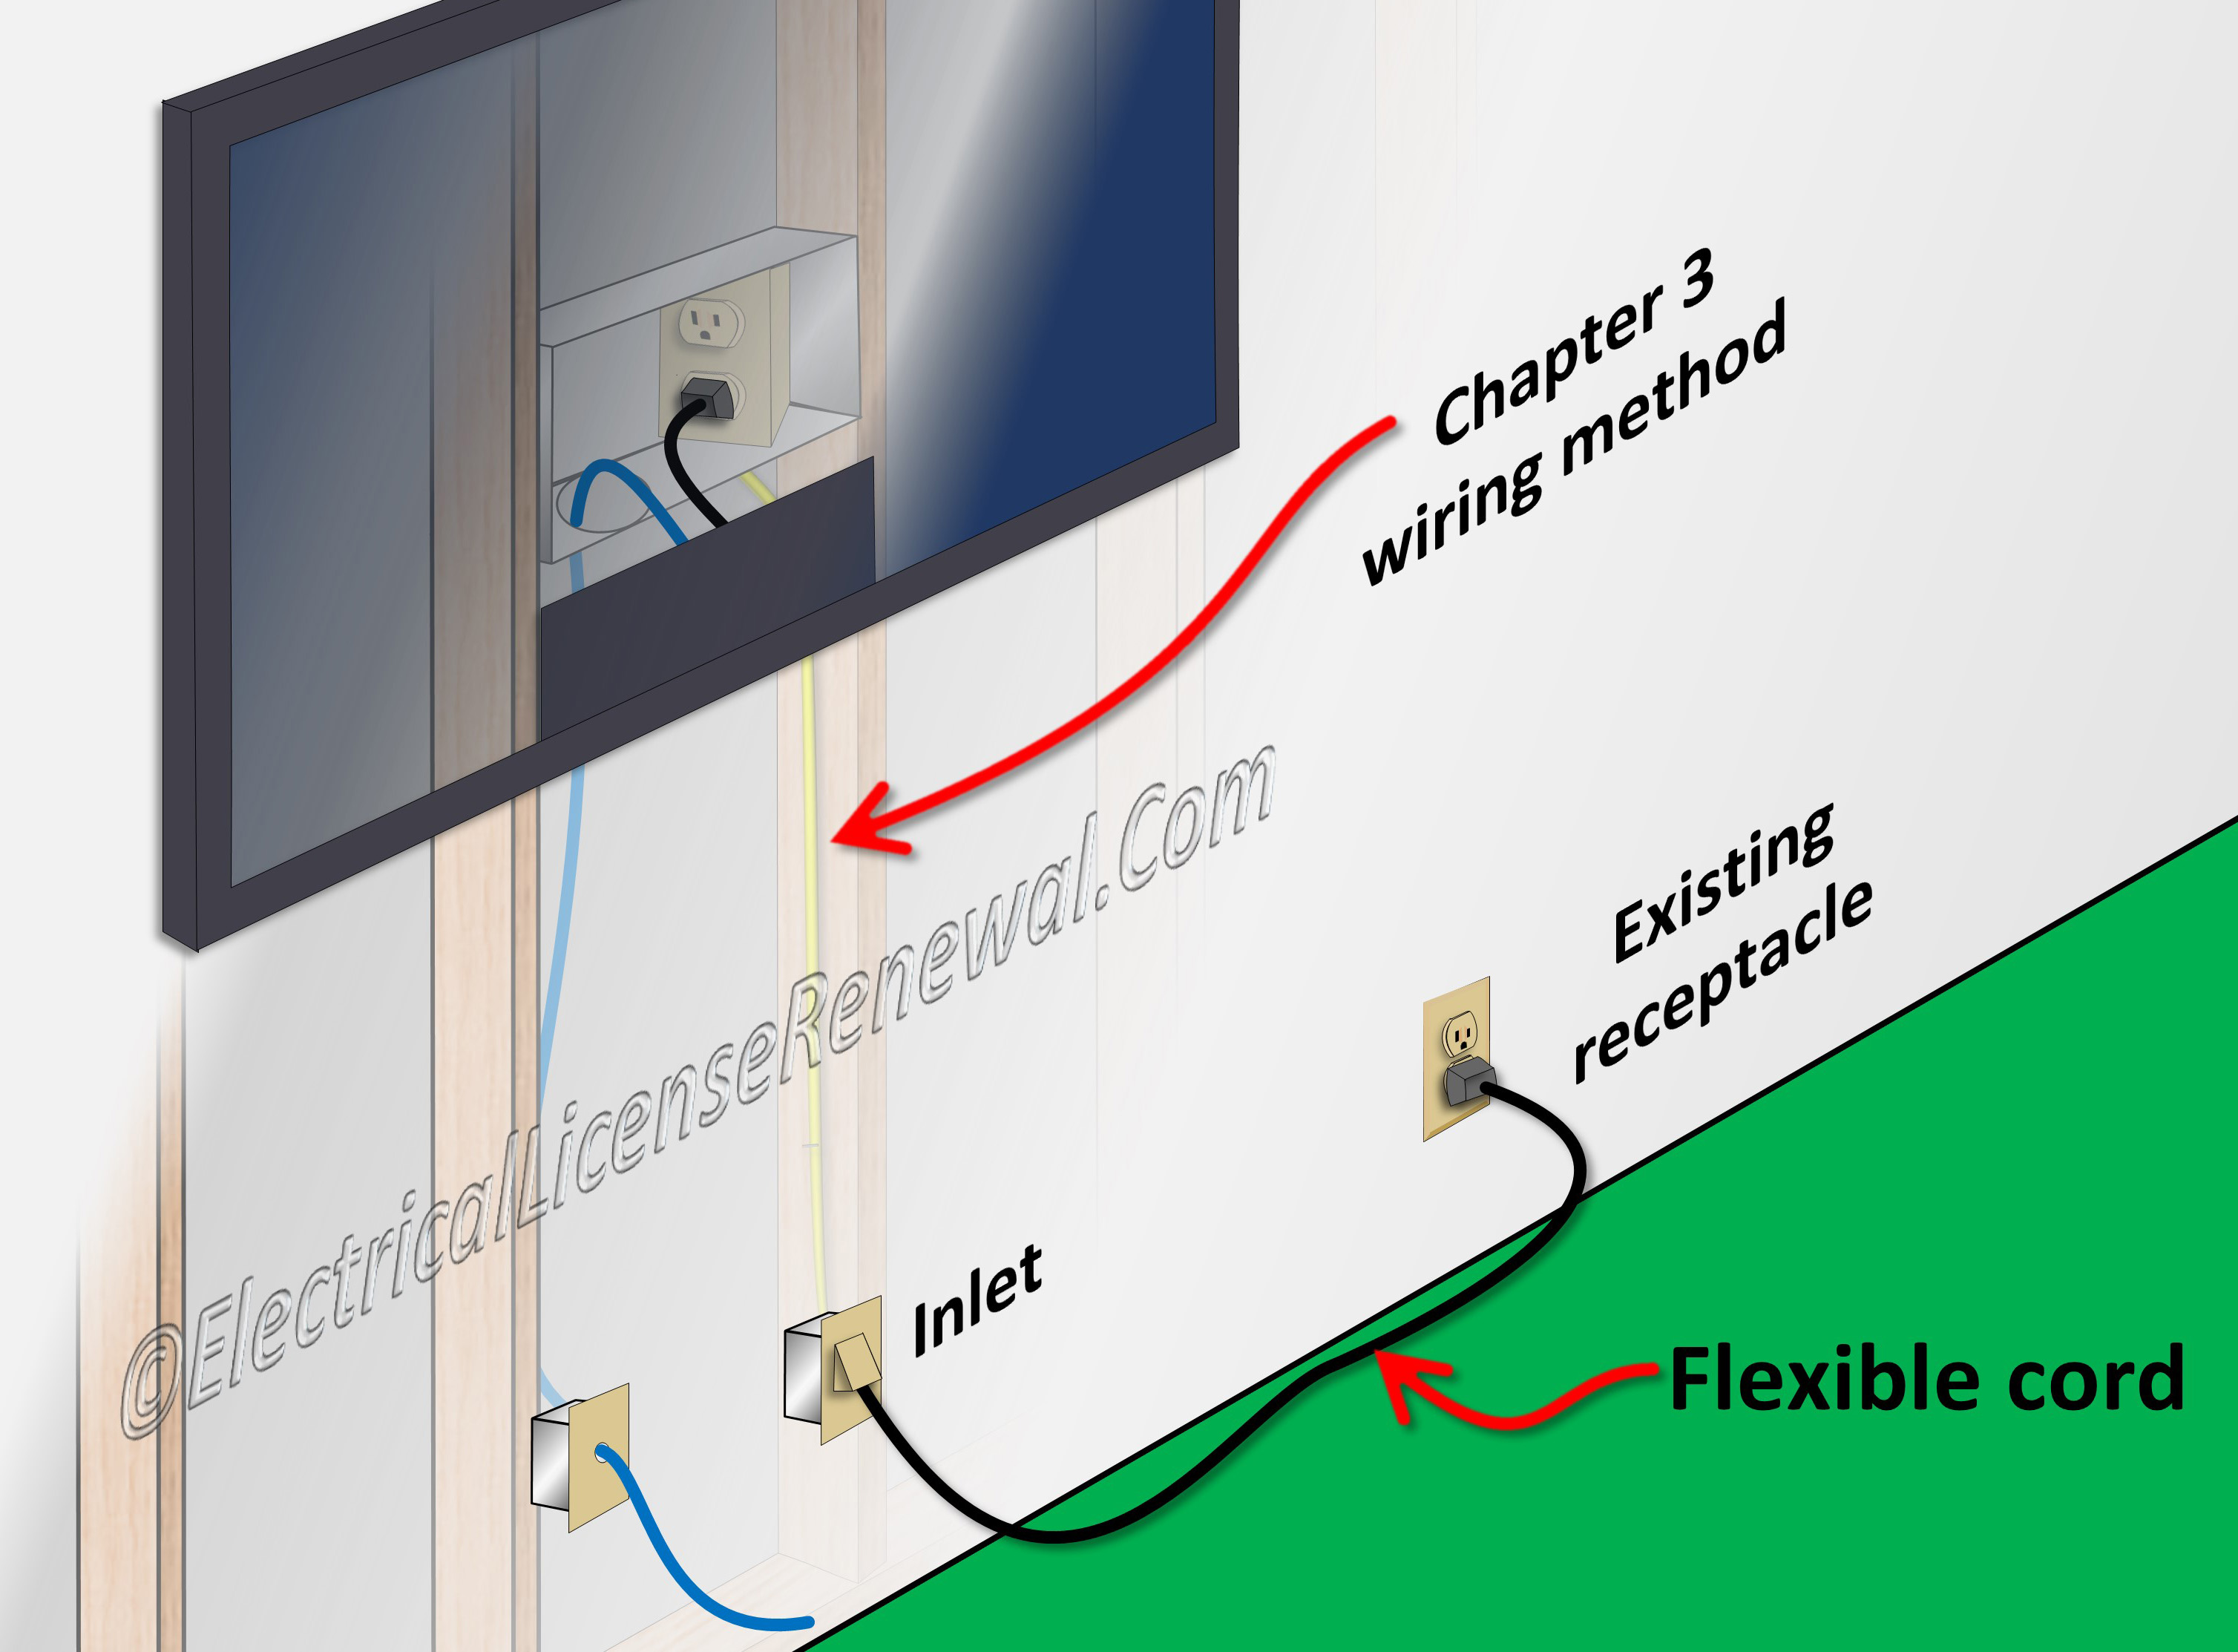 400 7 Flexible Cords and Cables  Uses Permitted